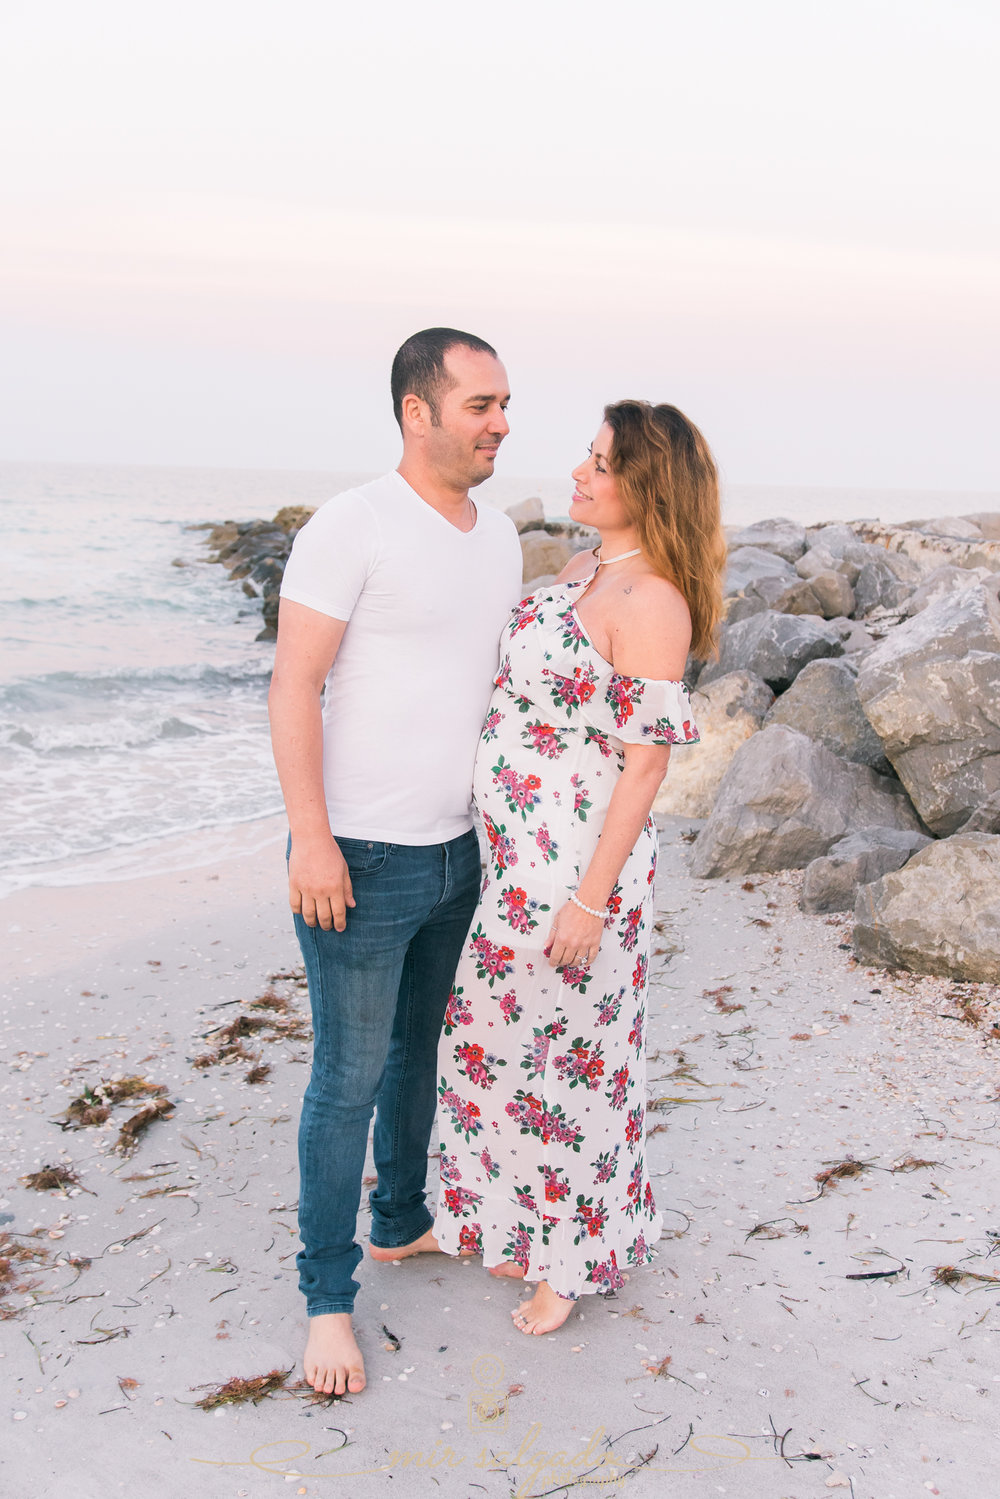 St.Pete-maternity-beach-session, Tampa-maternity-photographer